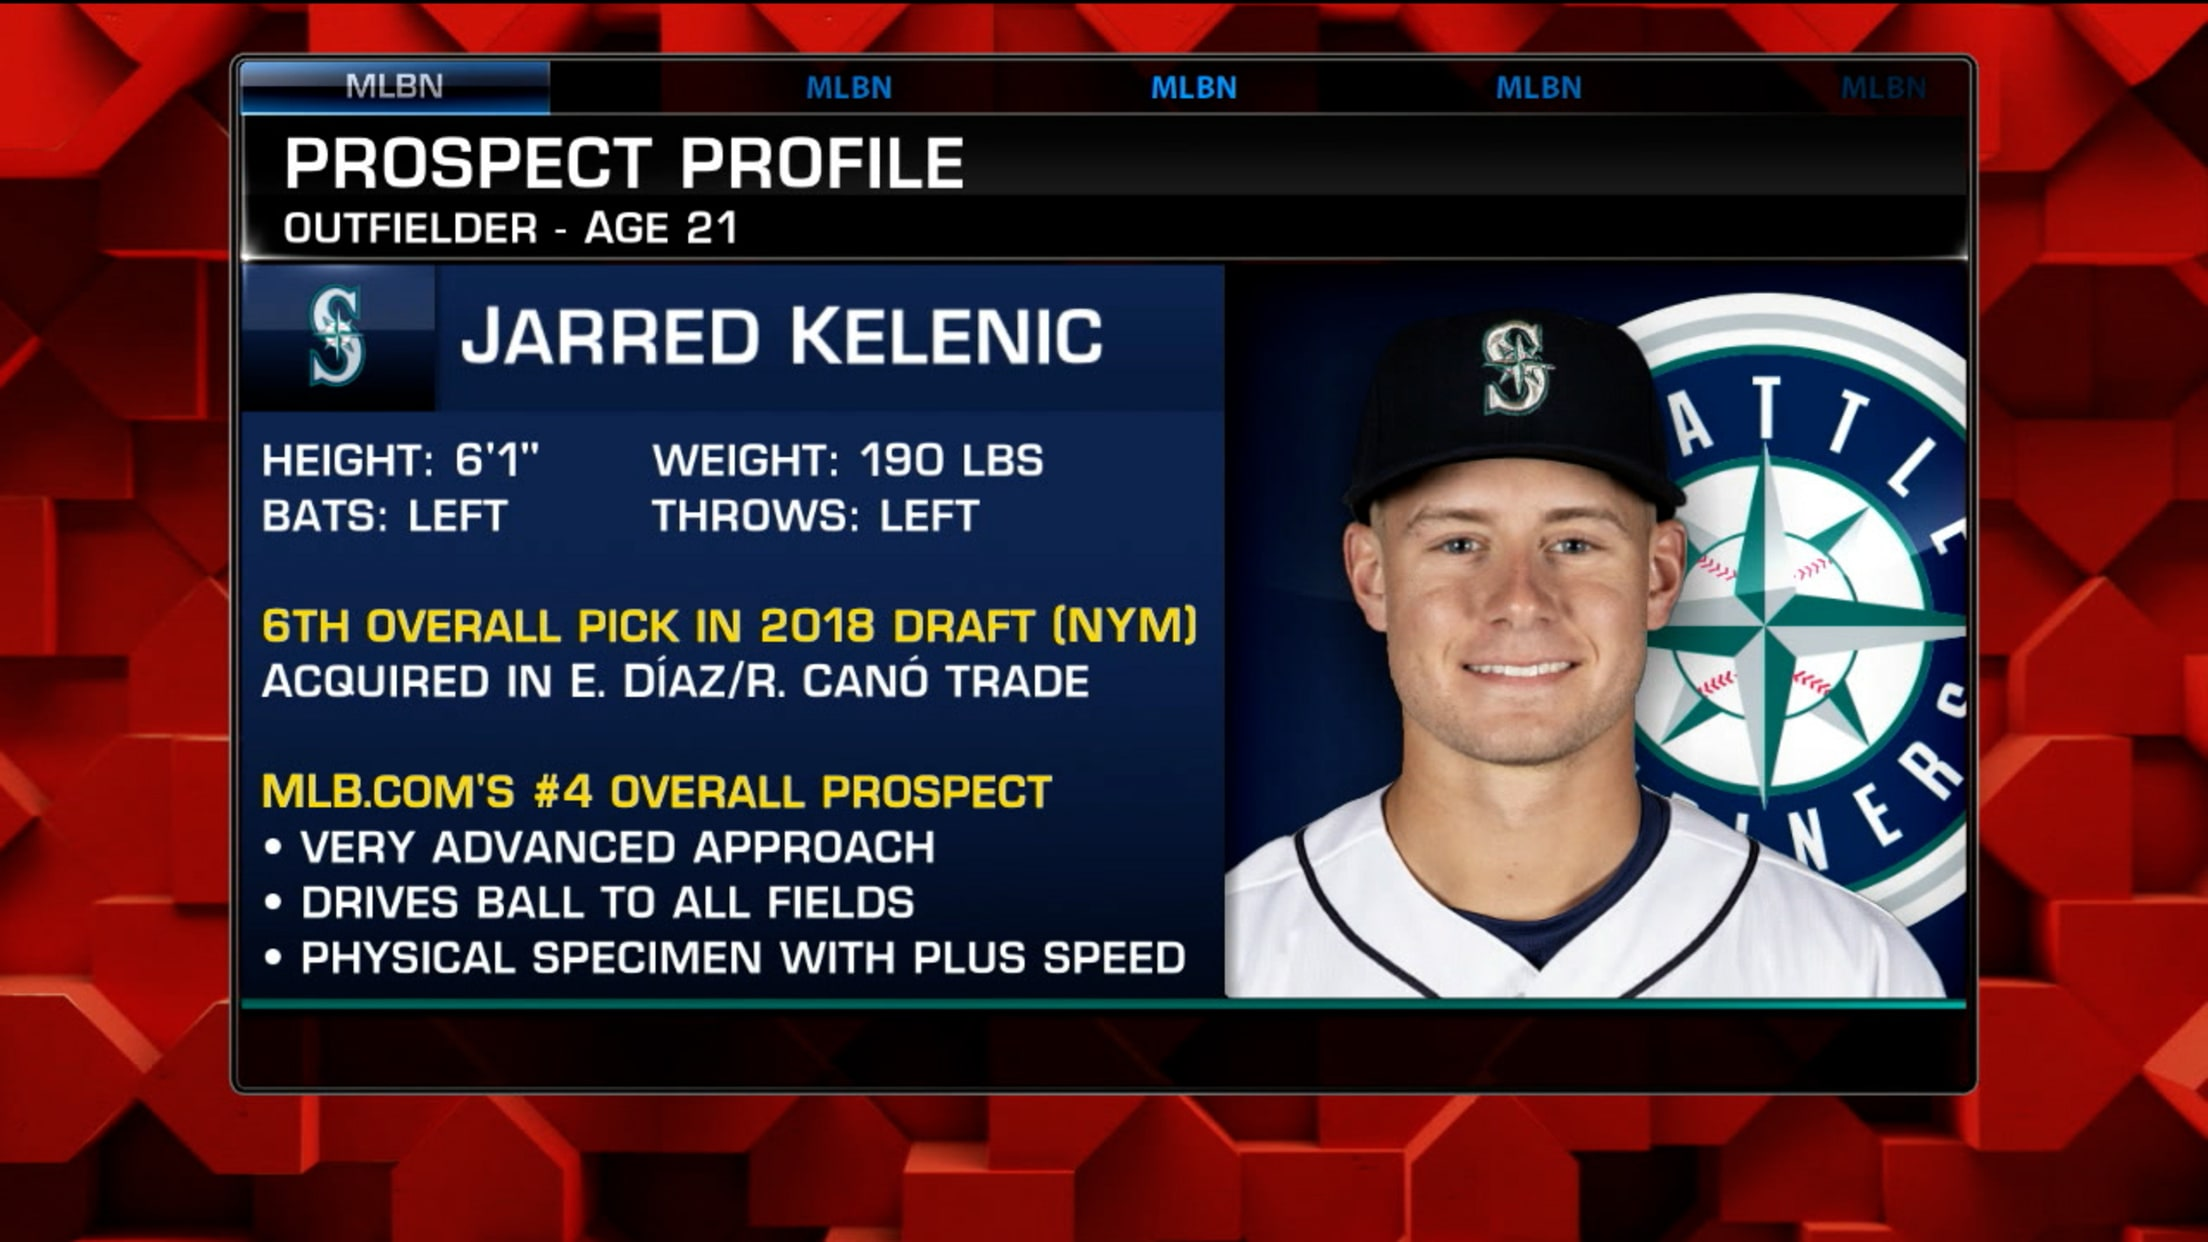 Jim Callis on Jarred Kelenic